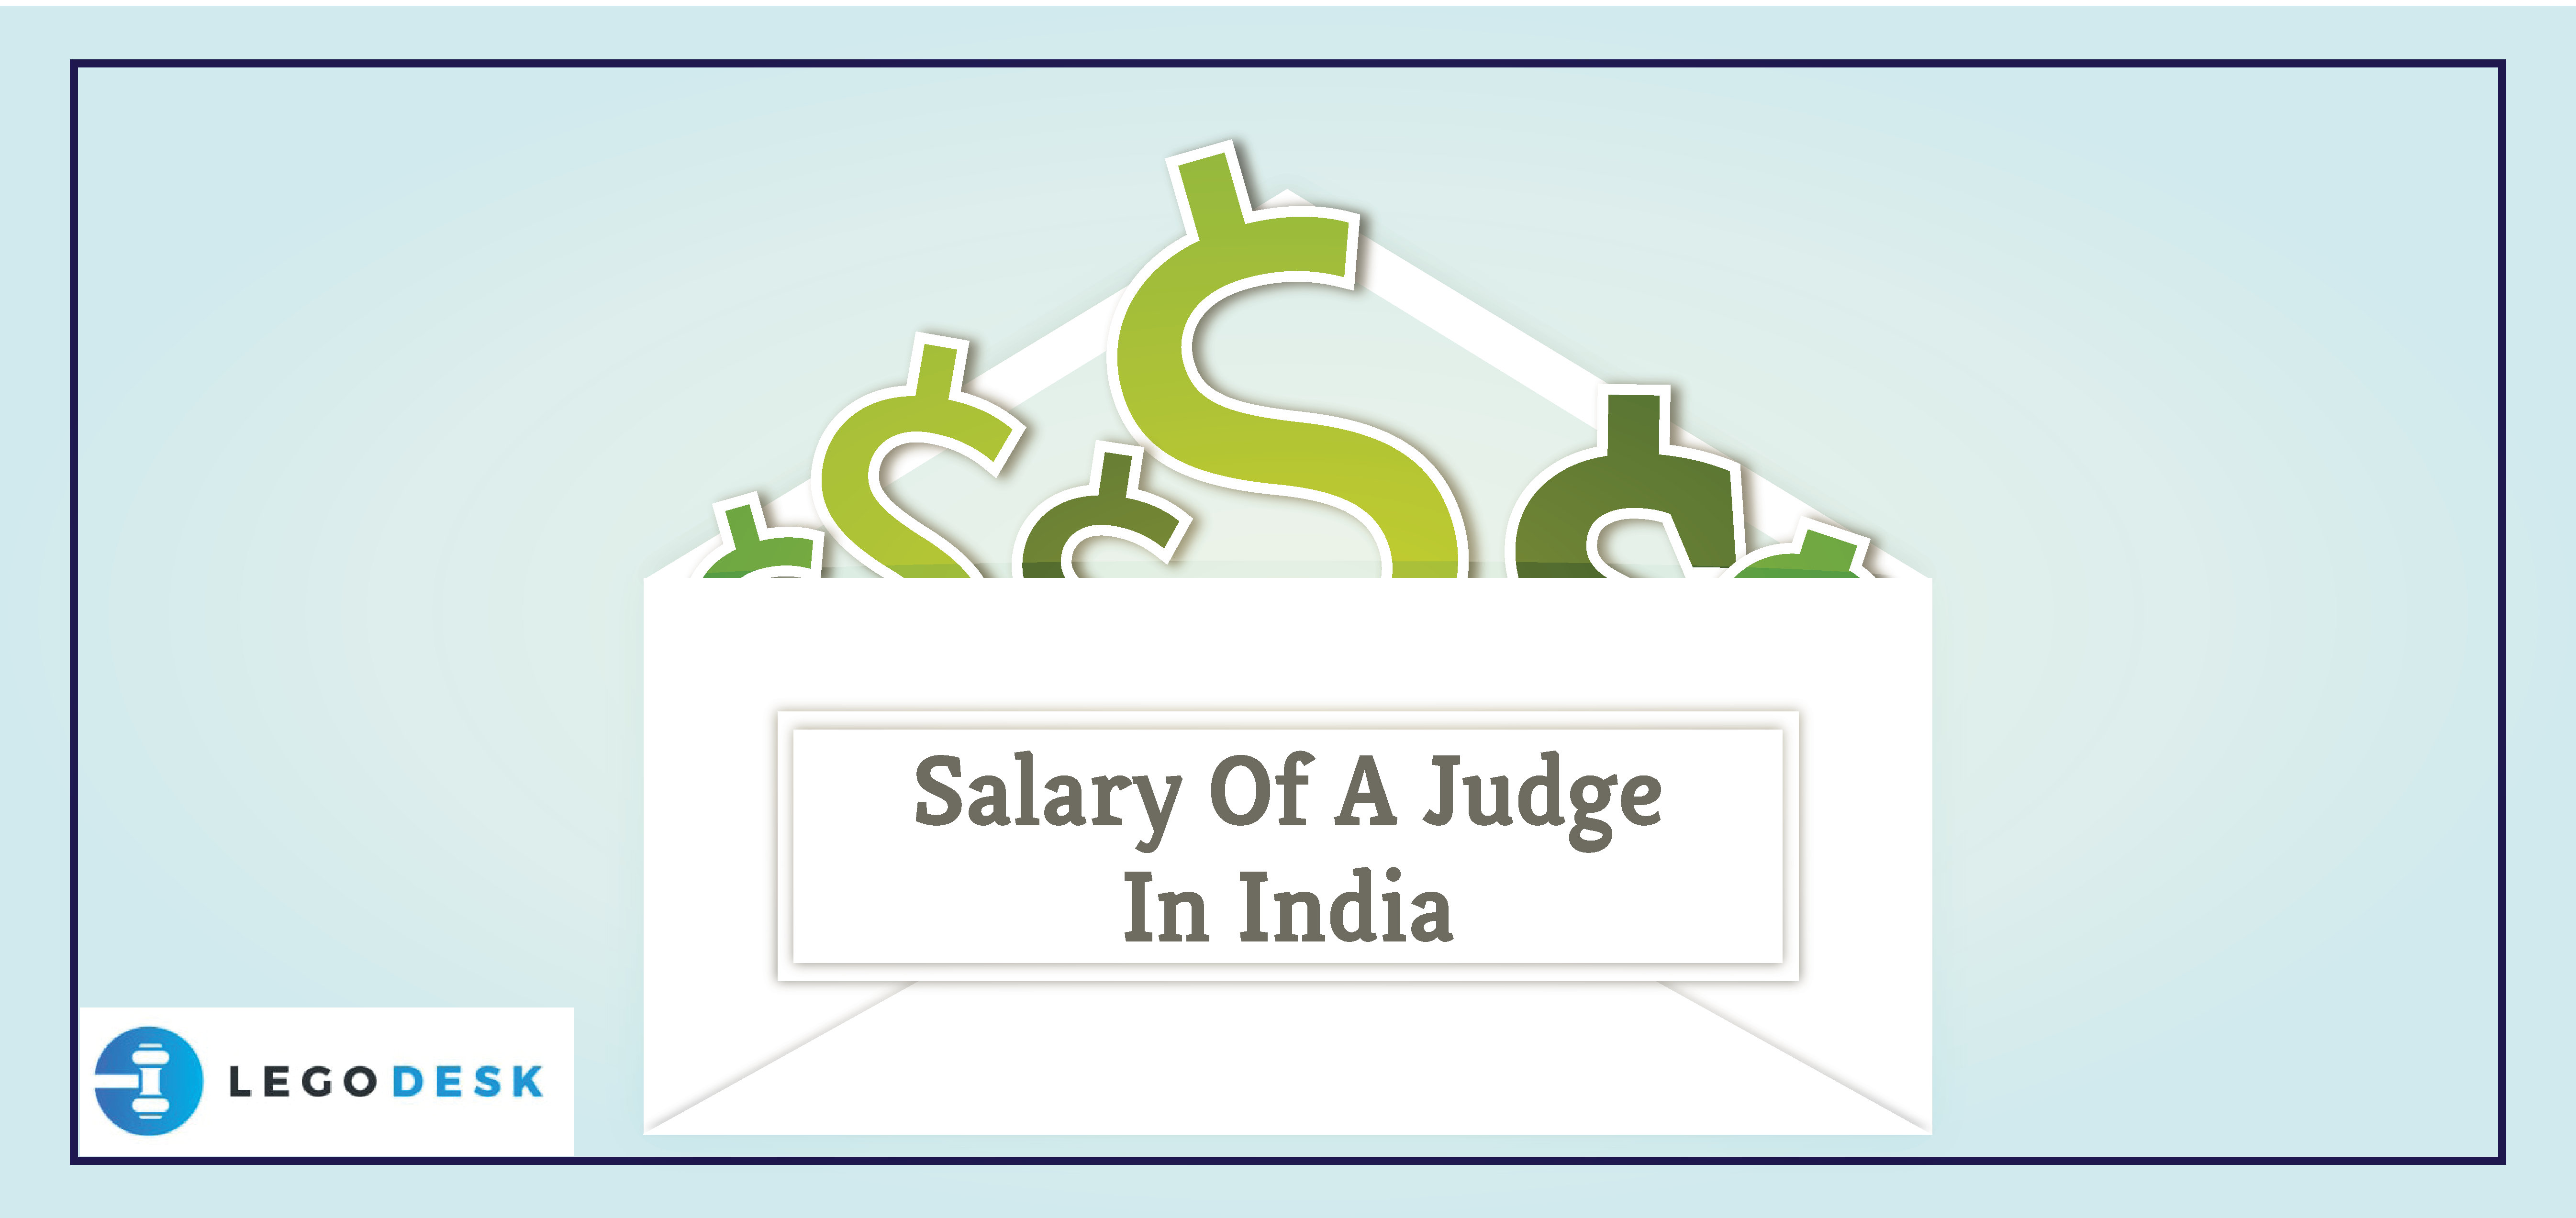 Salary of Judges In India